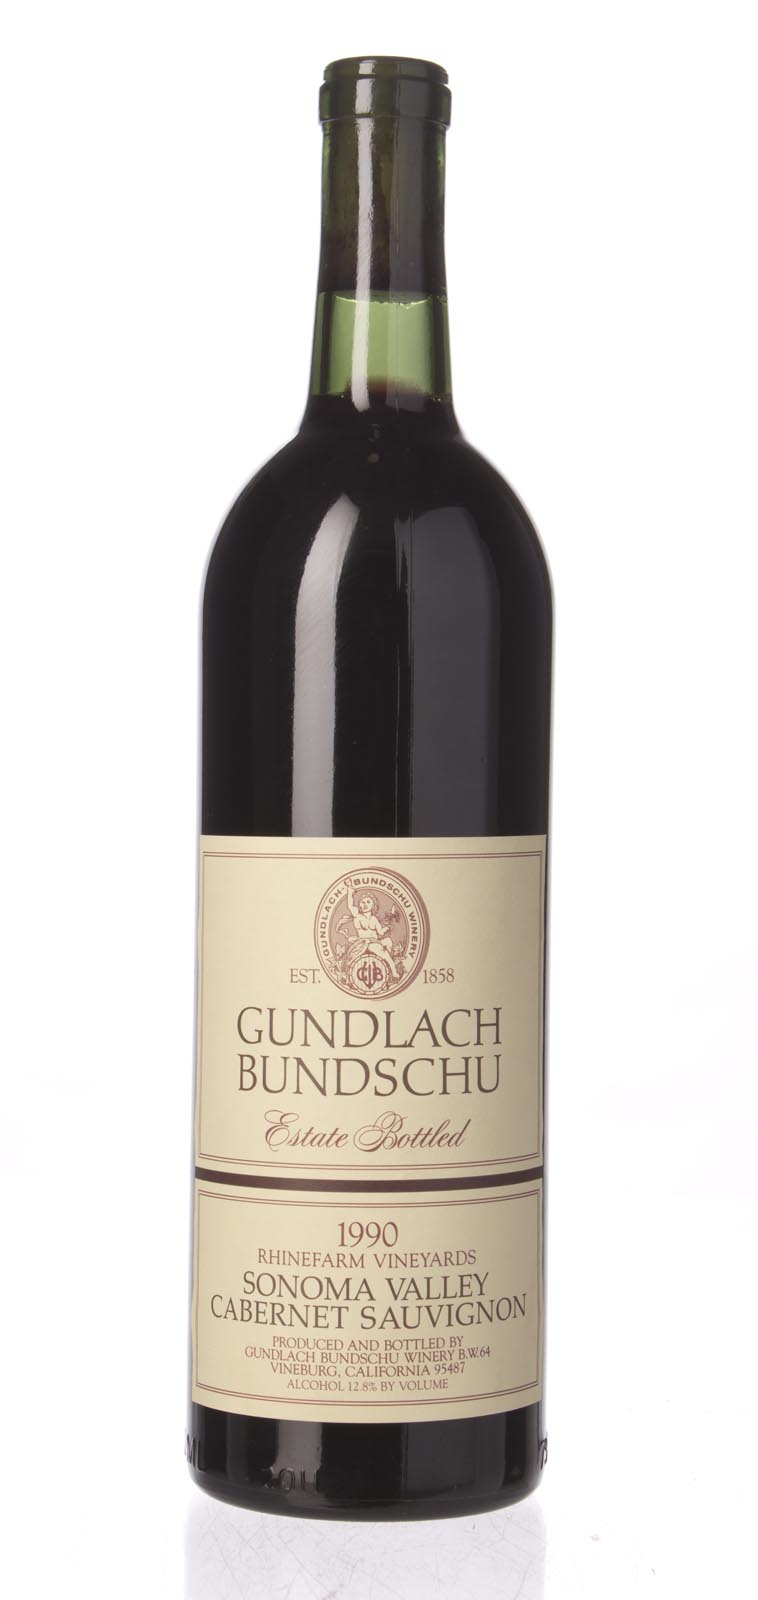 Gundlach Bundschu Cabernet Sauvignon Rhinefarm Vineyards 1990, 750ml () from The BPW - Merchants of rare and fine wines.